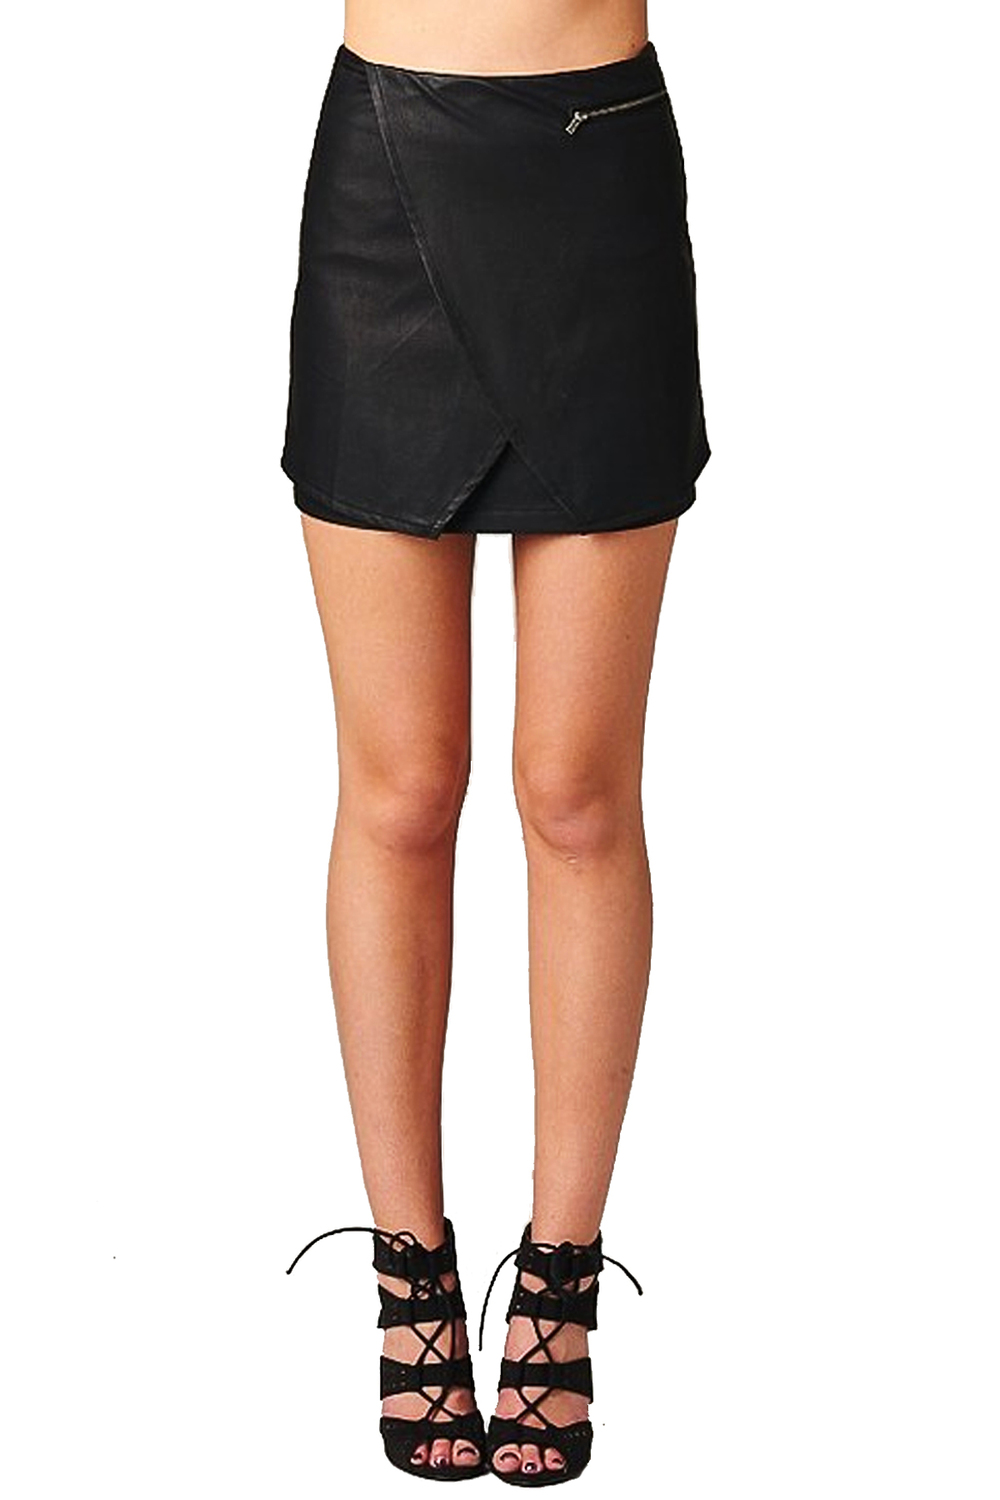 Asymmetrical faux leather mini skirt — simply chic